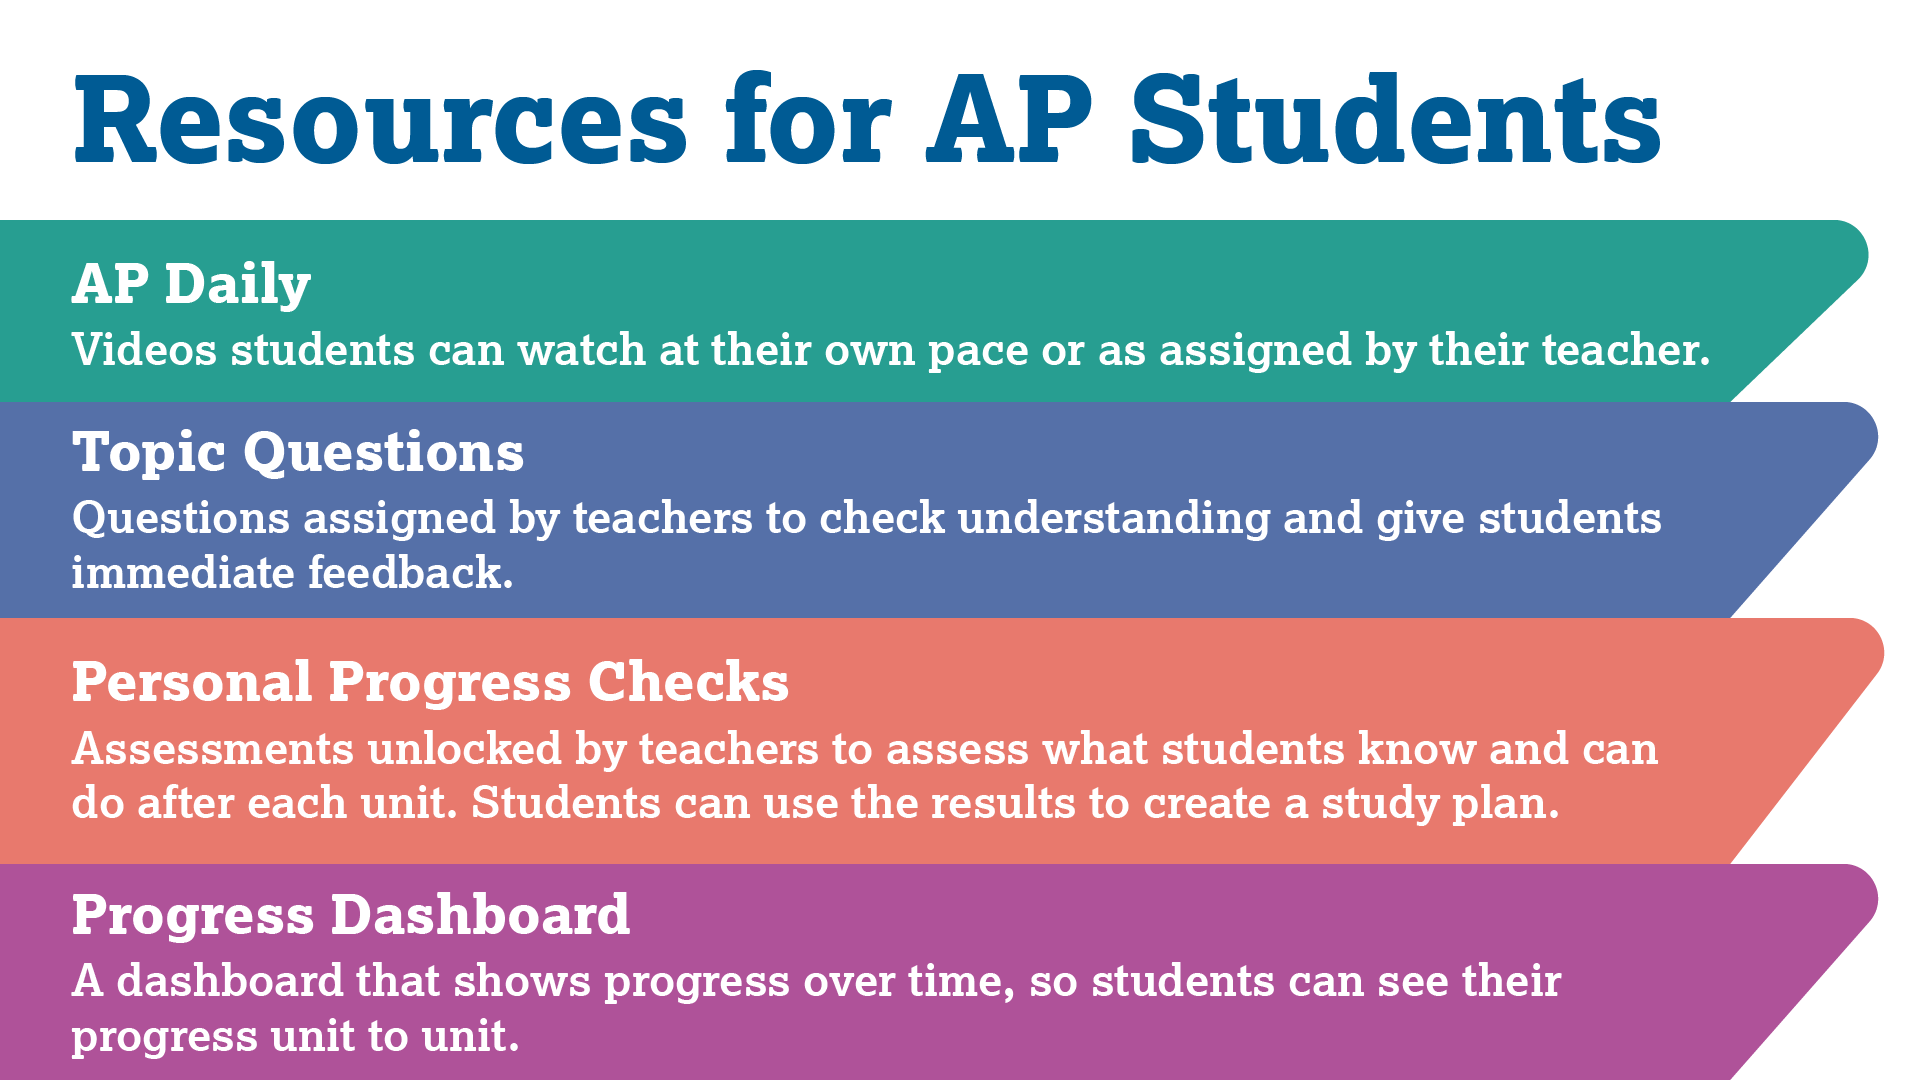 Resources for AP Students